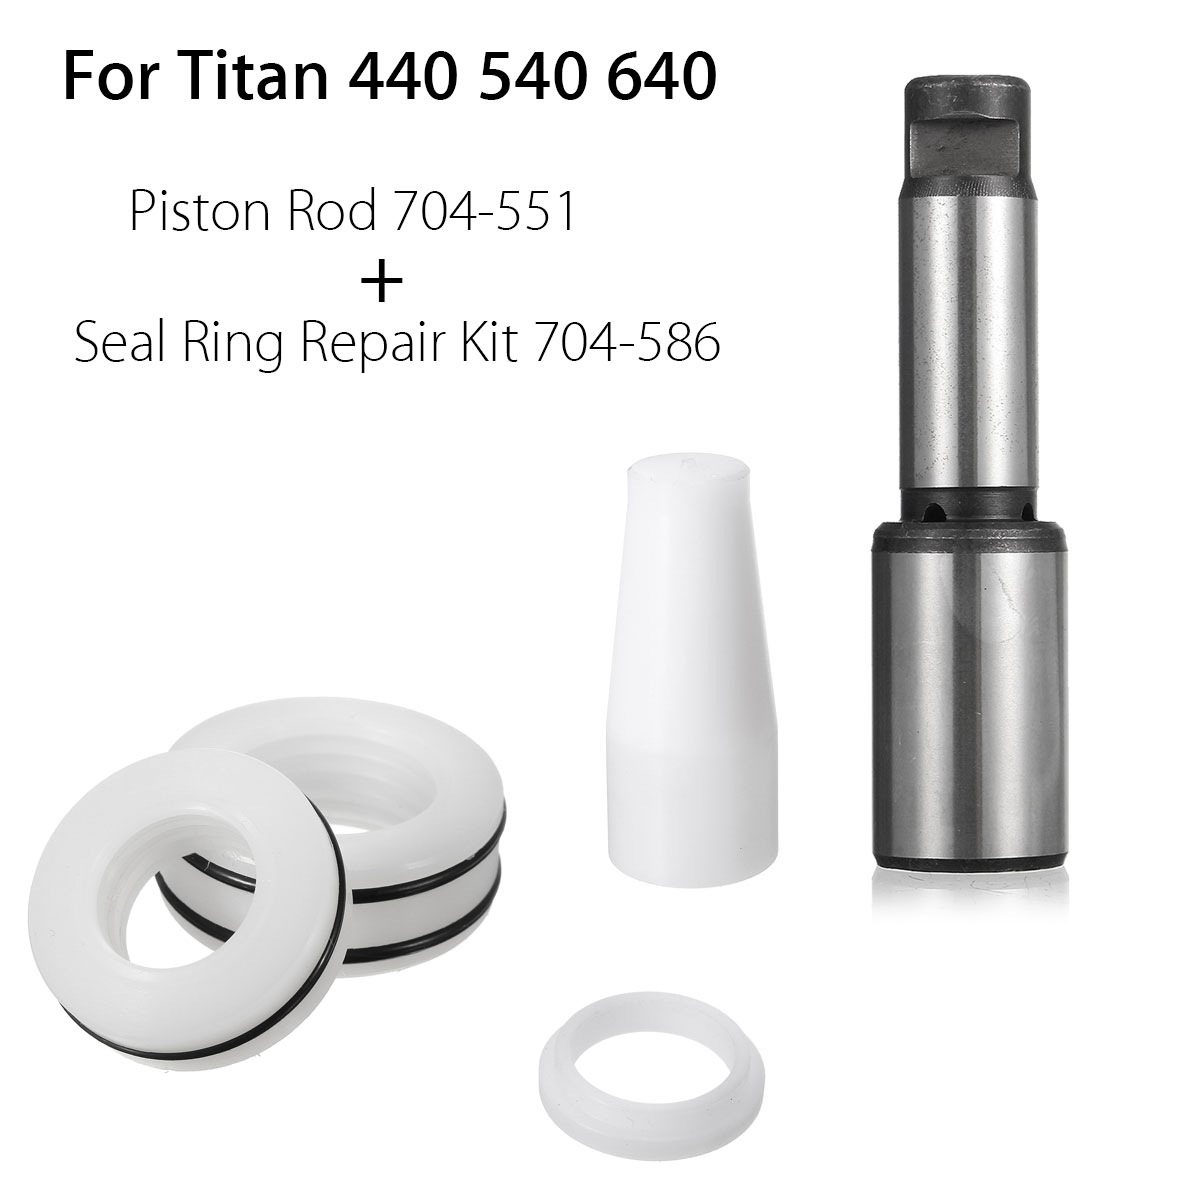 Doersupp For Titan 440 540 640 Piston Rod 704-551 With Airless Seal Repair Kit 704-586 Cage And Retainer Inside